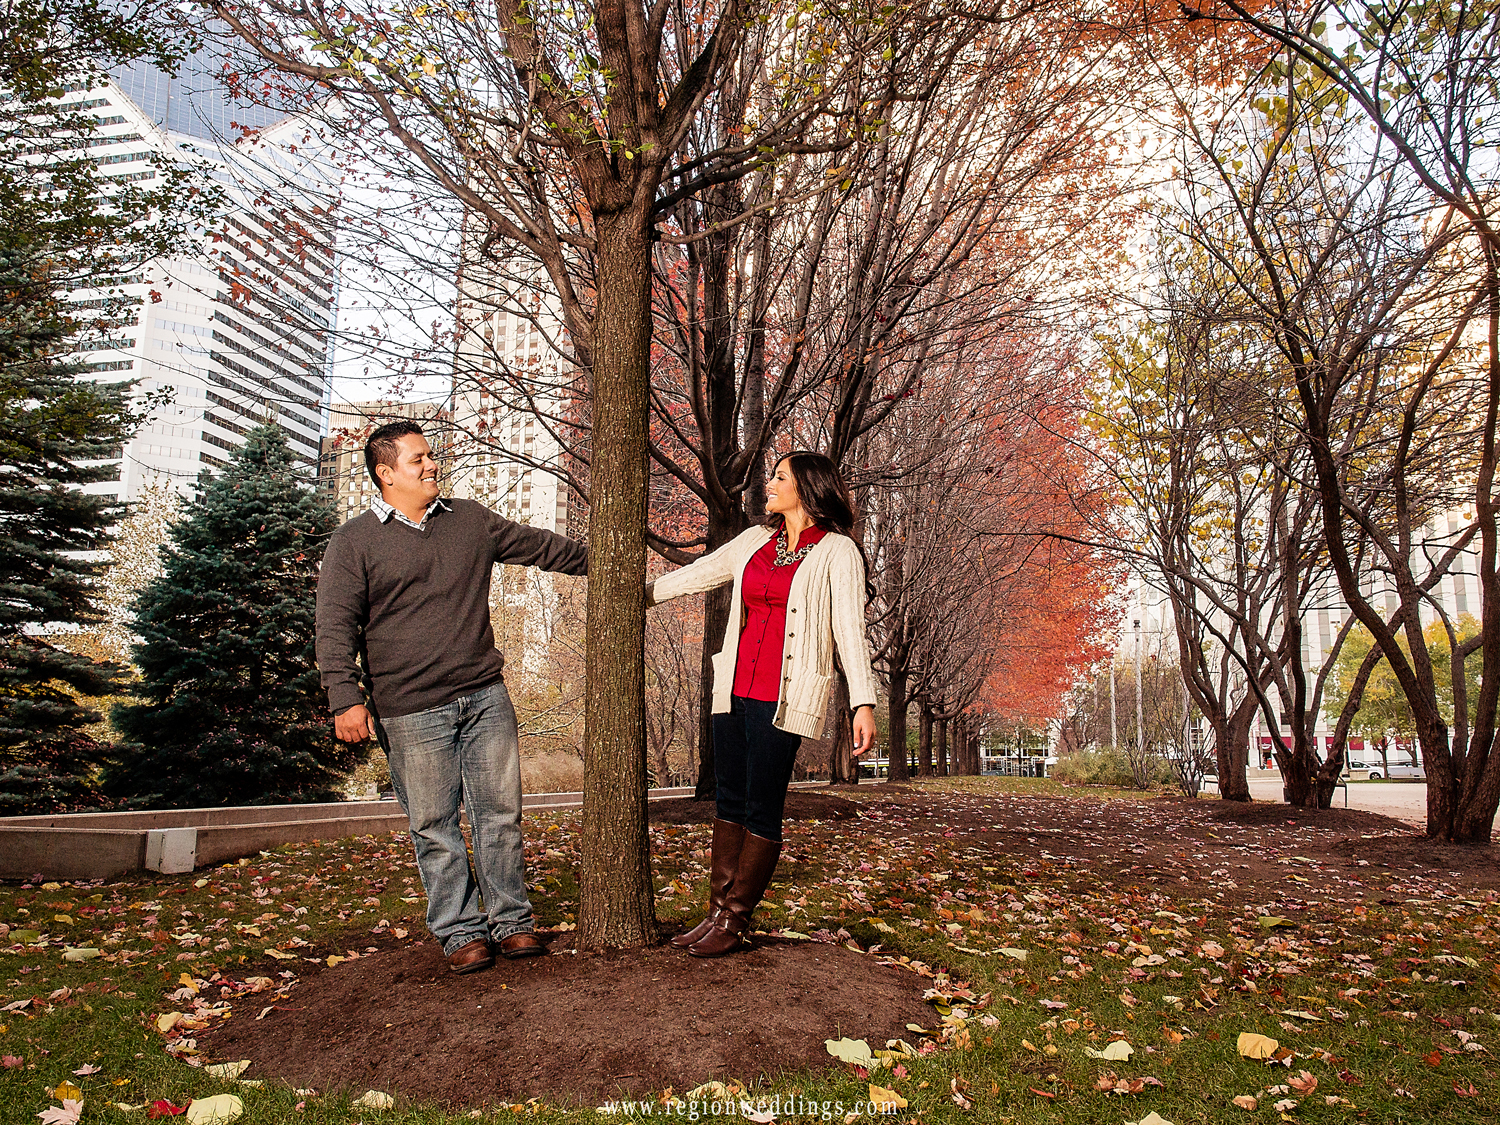 A couple playfully looks at each from each side of a large tree in Millennium Park.